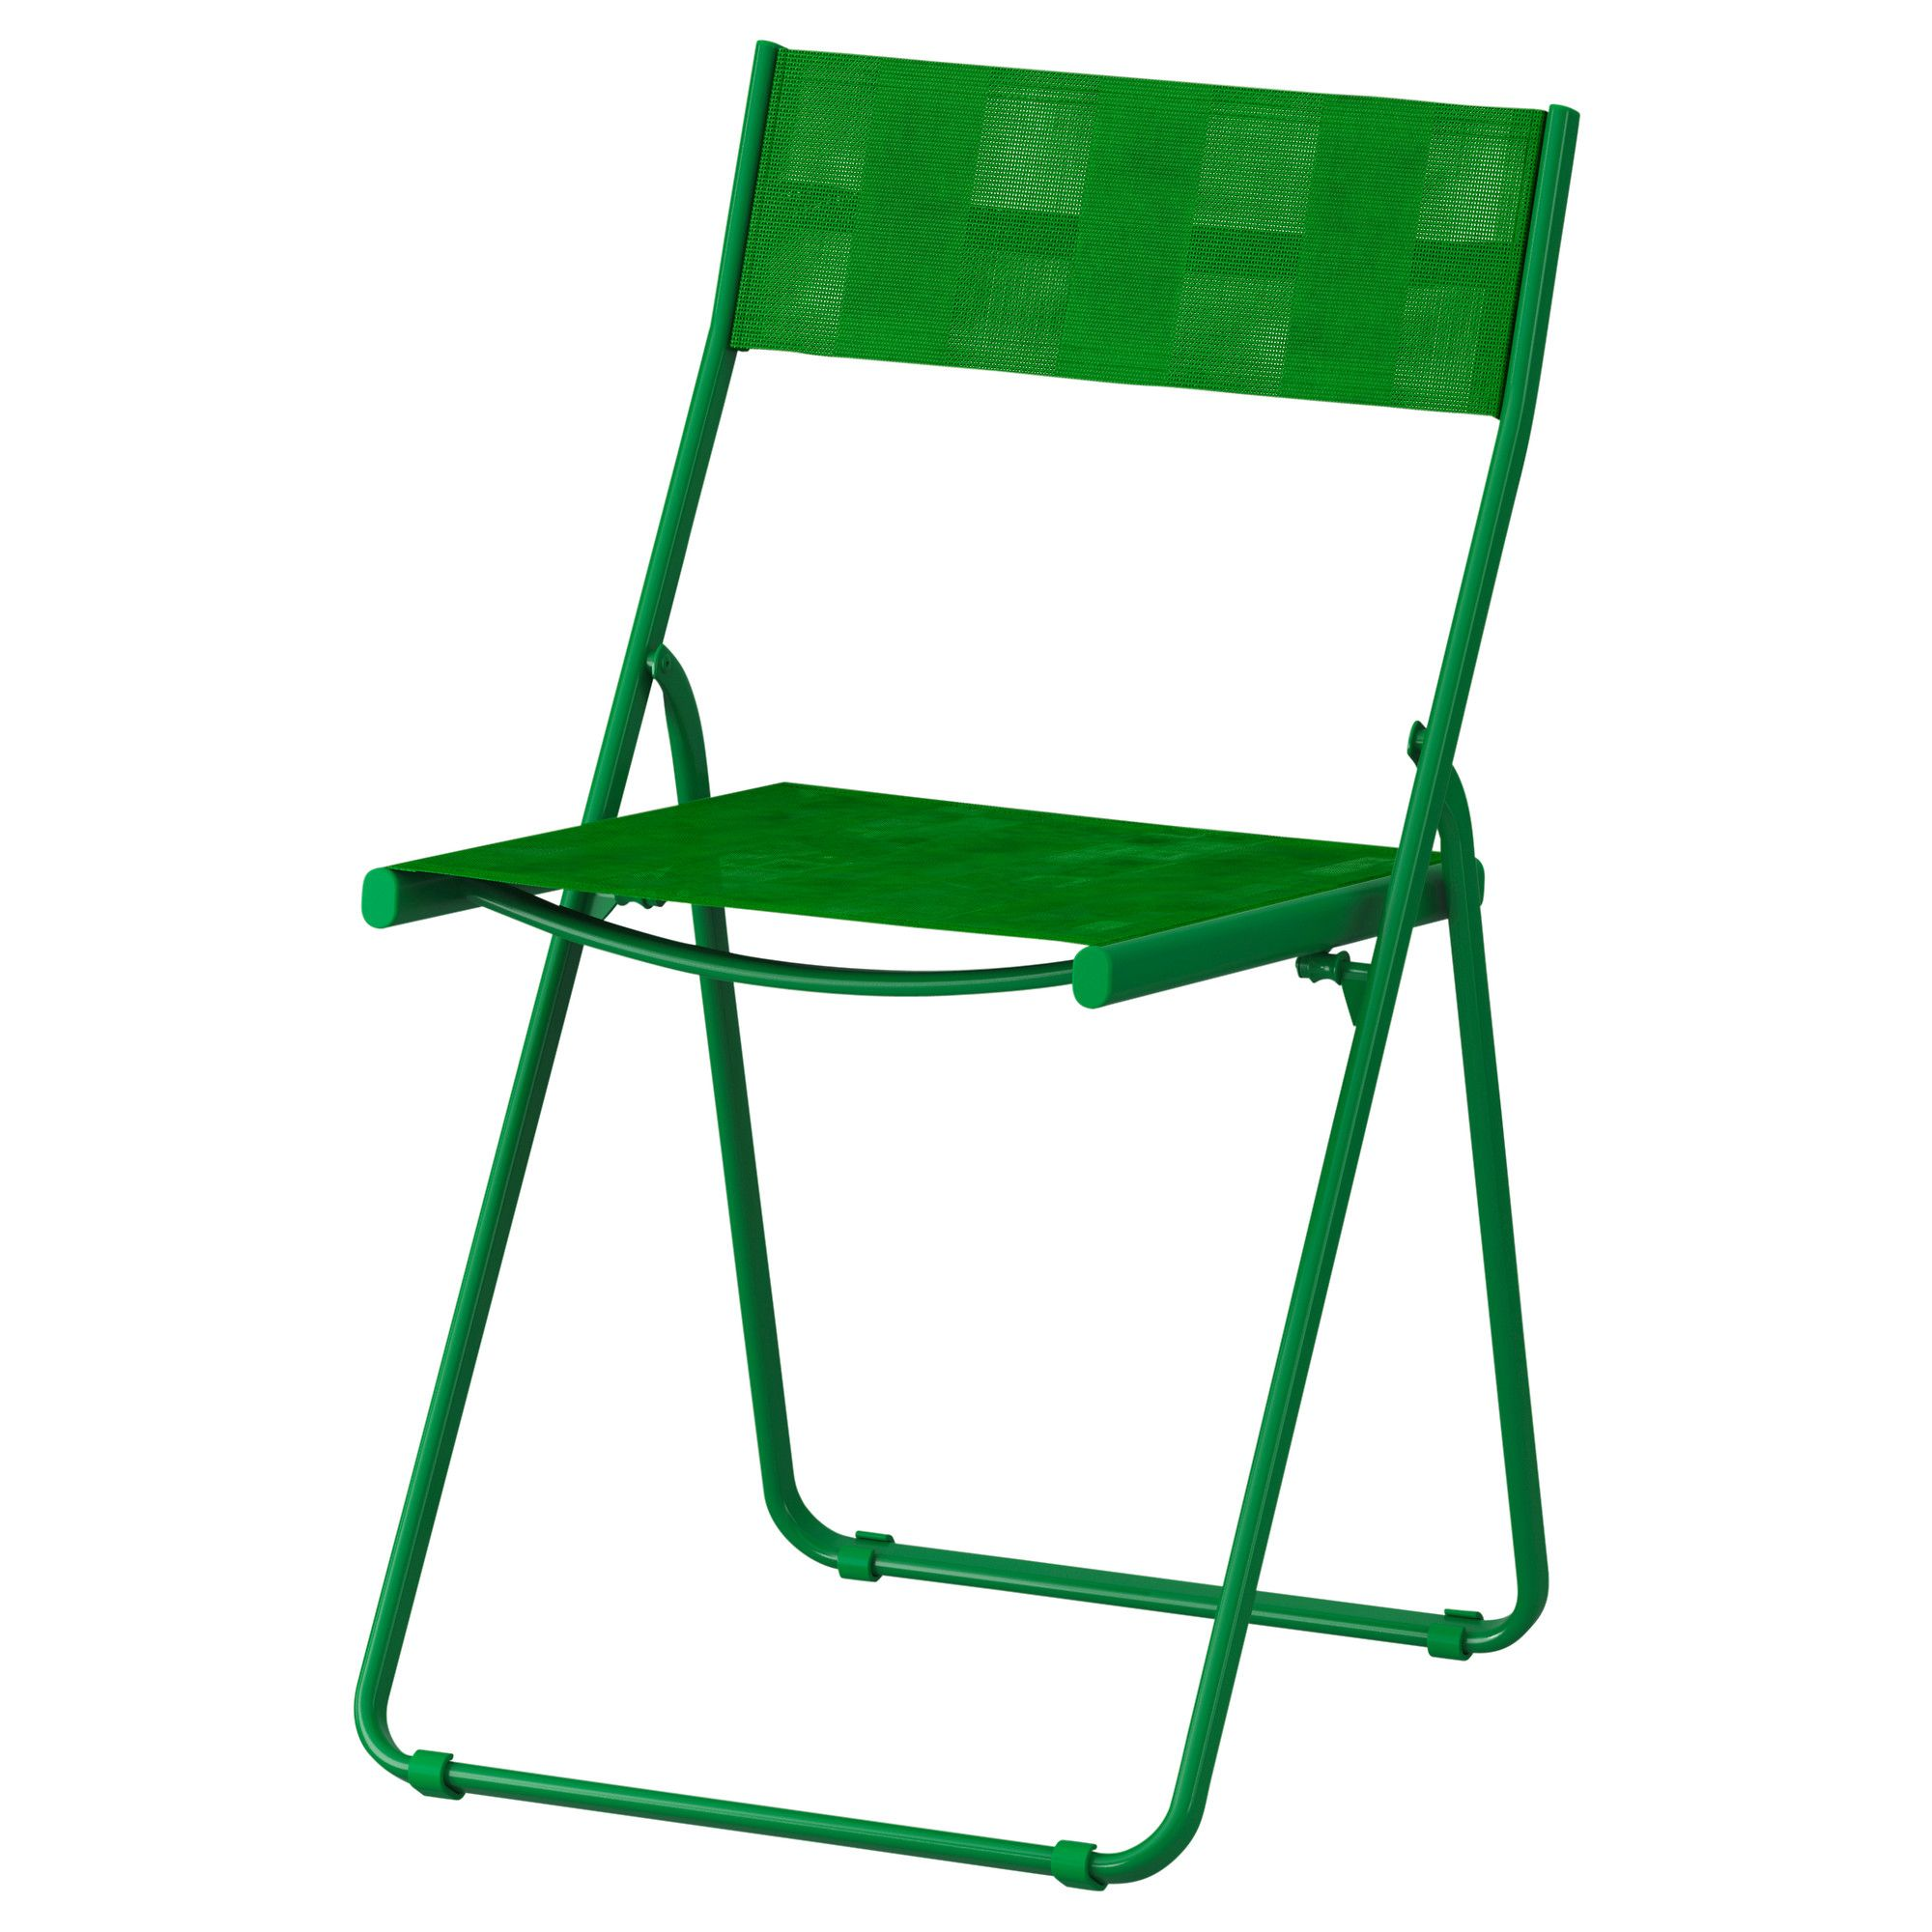 HÄRÖ Folding chair - green - IKEA    To go with the fold down desk